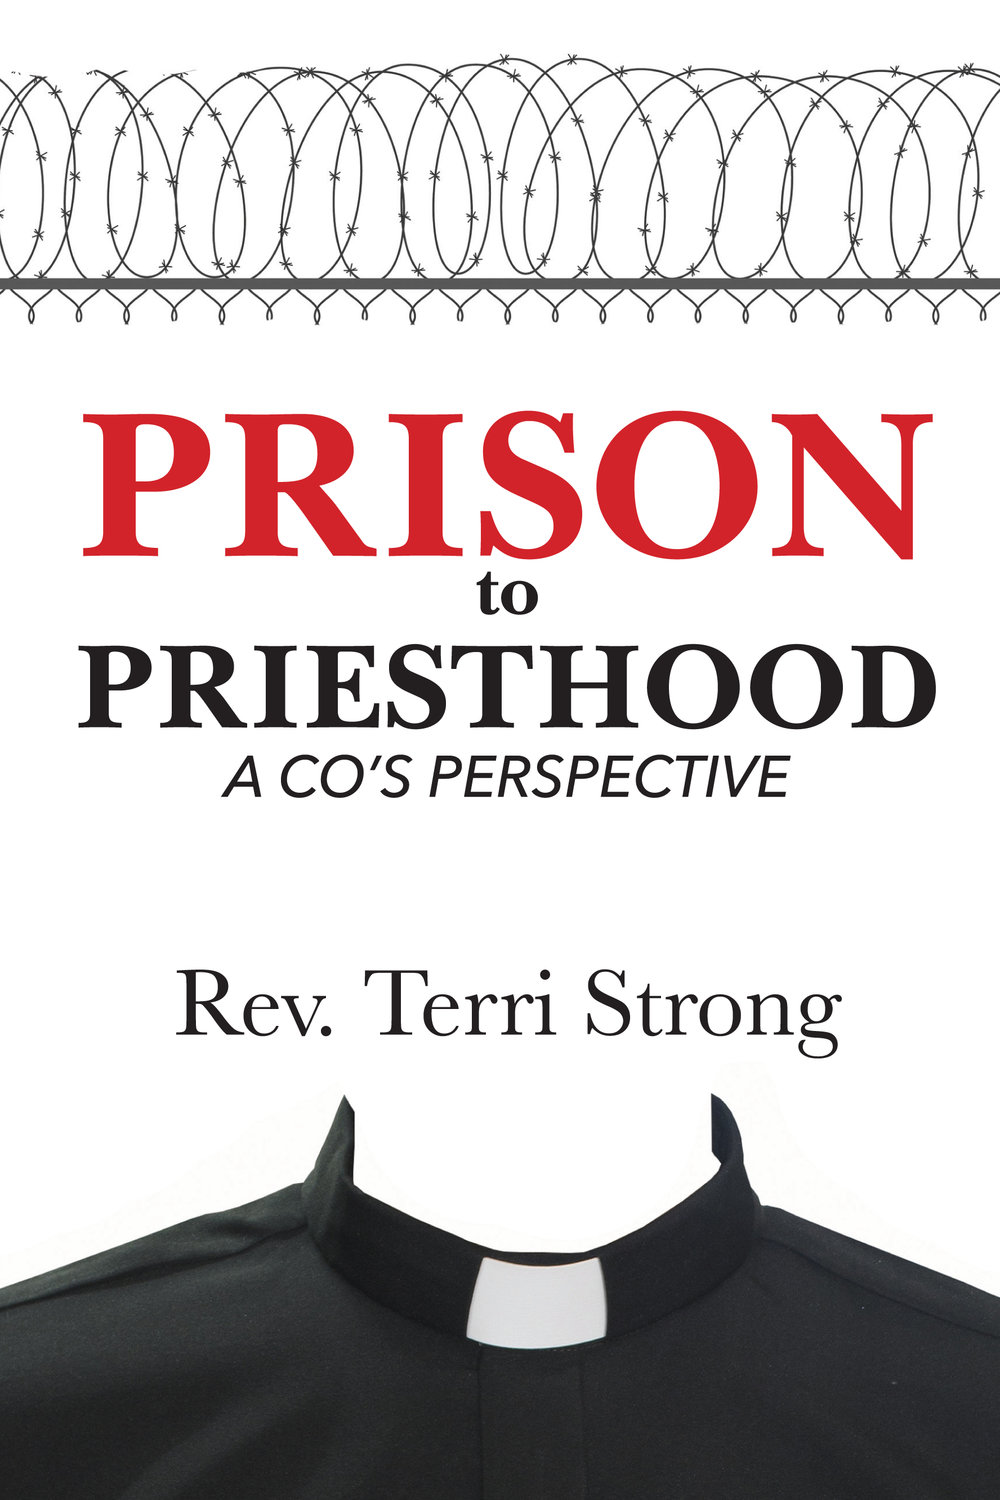 - In this insightful book, Terri Strong, shares deep truth that will empower any person who unwittingly has built a prison of their own making that limits their potential. Sometimes these prisons are constructed of words, thoughts and behaviors, and in all cases, God's Word, the Bible provides the insights that one needs to reach their fullest potential in Christ.Serving as a Corrections Officer for 25 years in the County Jail of Memphis, Tennessee has provided Terri Strong with unique insights about human behavior, incarceration, and why some inmates remain free, never to return, and others can never seem to break the cycle. You will be amazed at the stories that Terri Strong has to share about her journey, but you will be even more encouraged by the insights she provides for all of us.